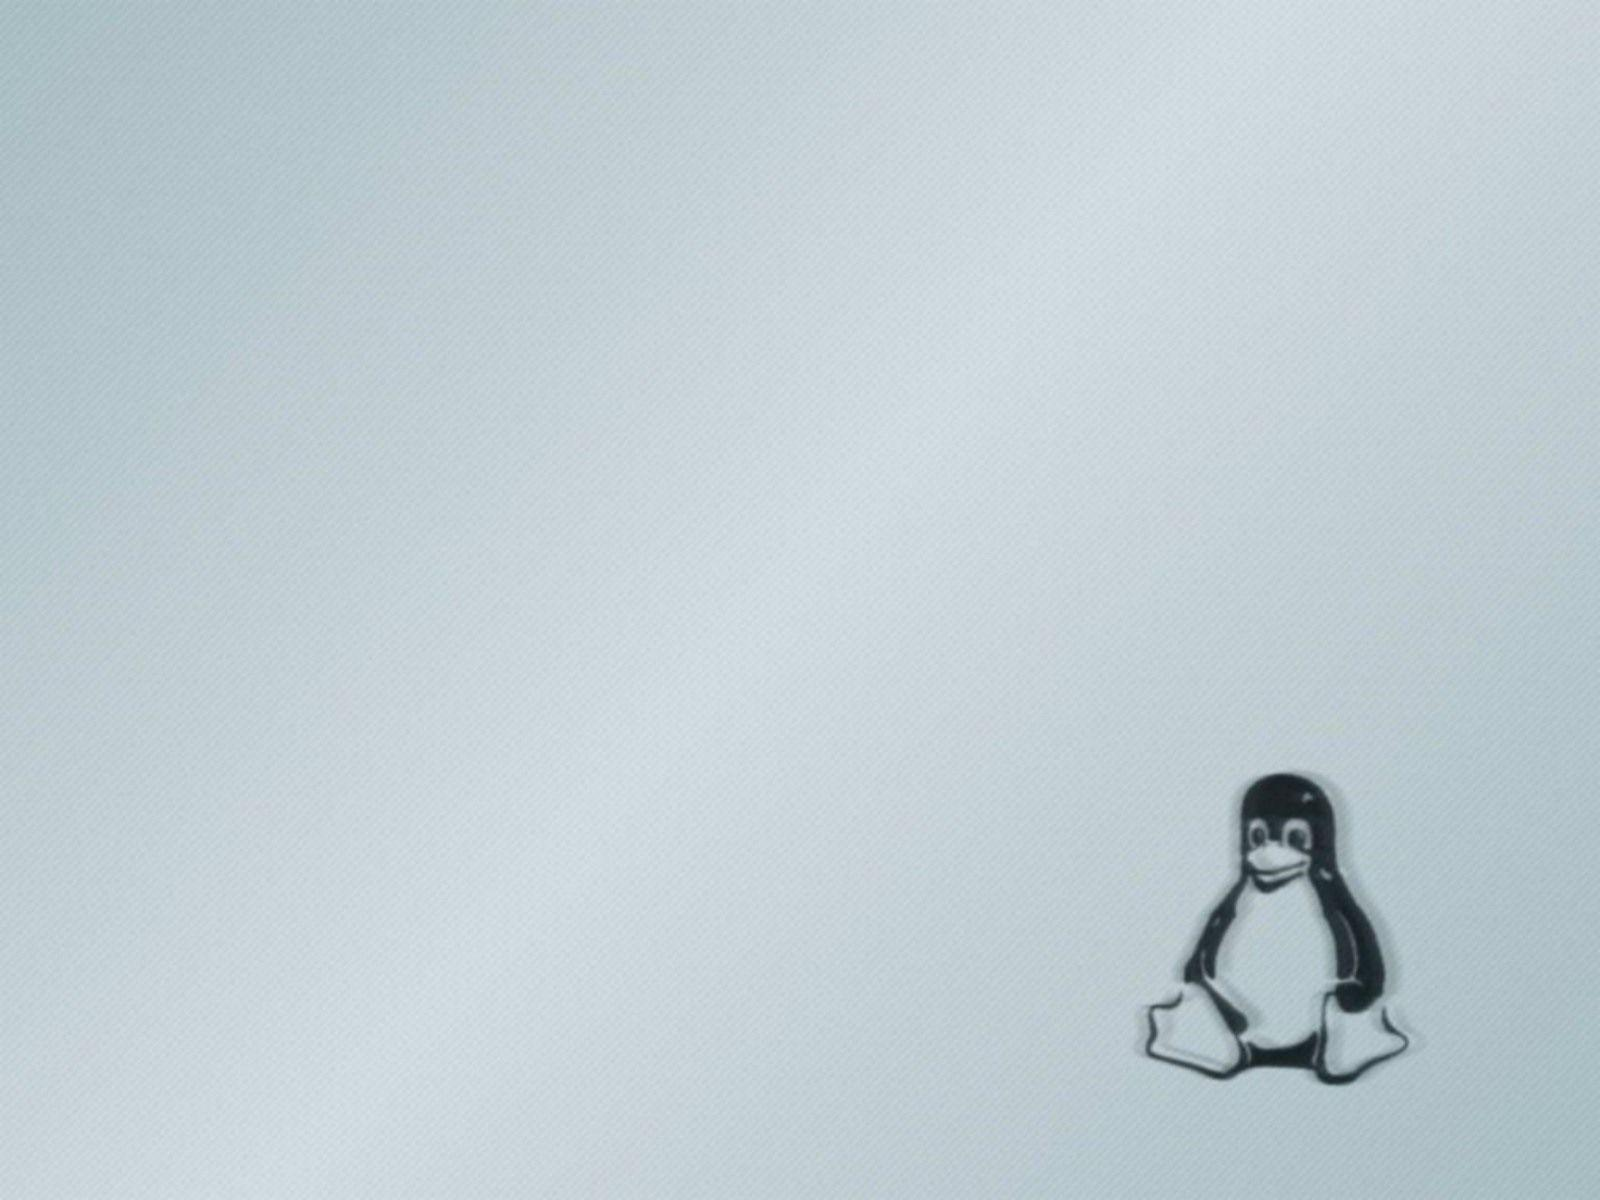 Wallpapers For > Linux Penguin Wallpaper